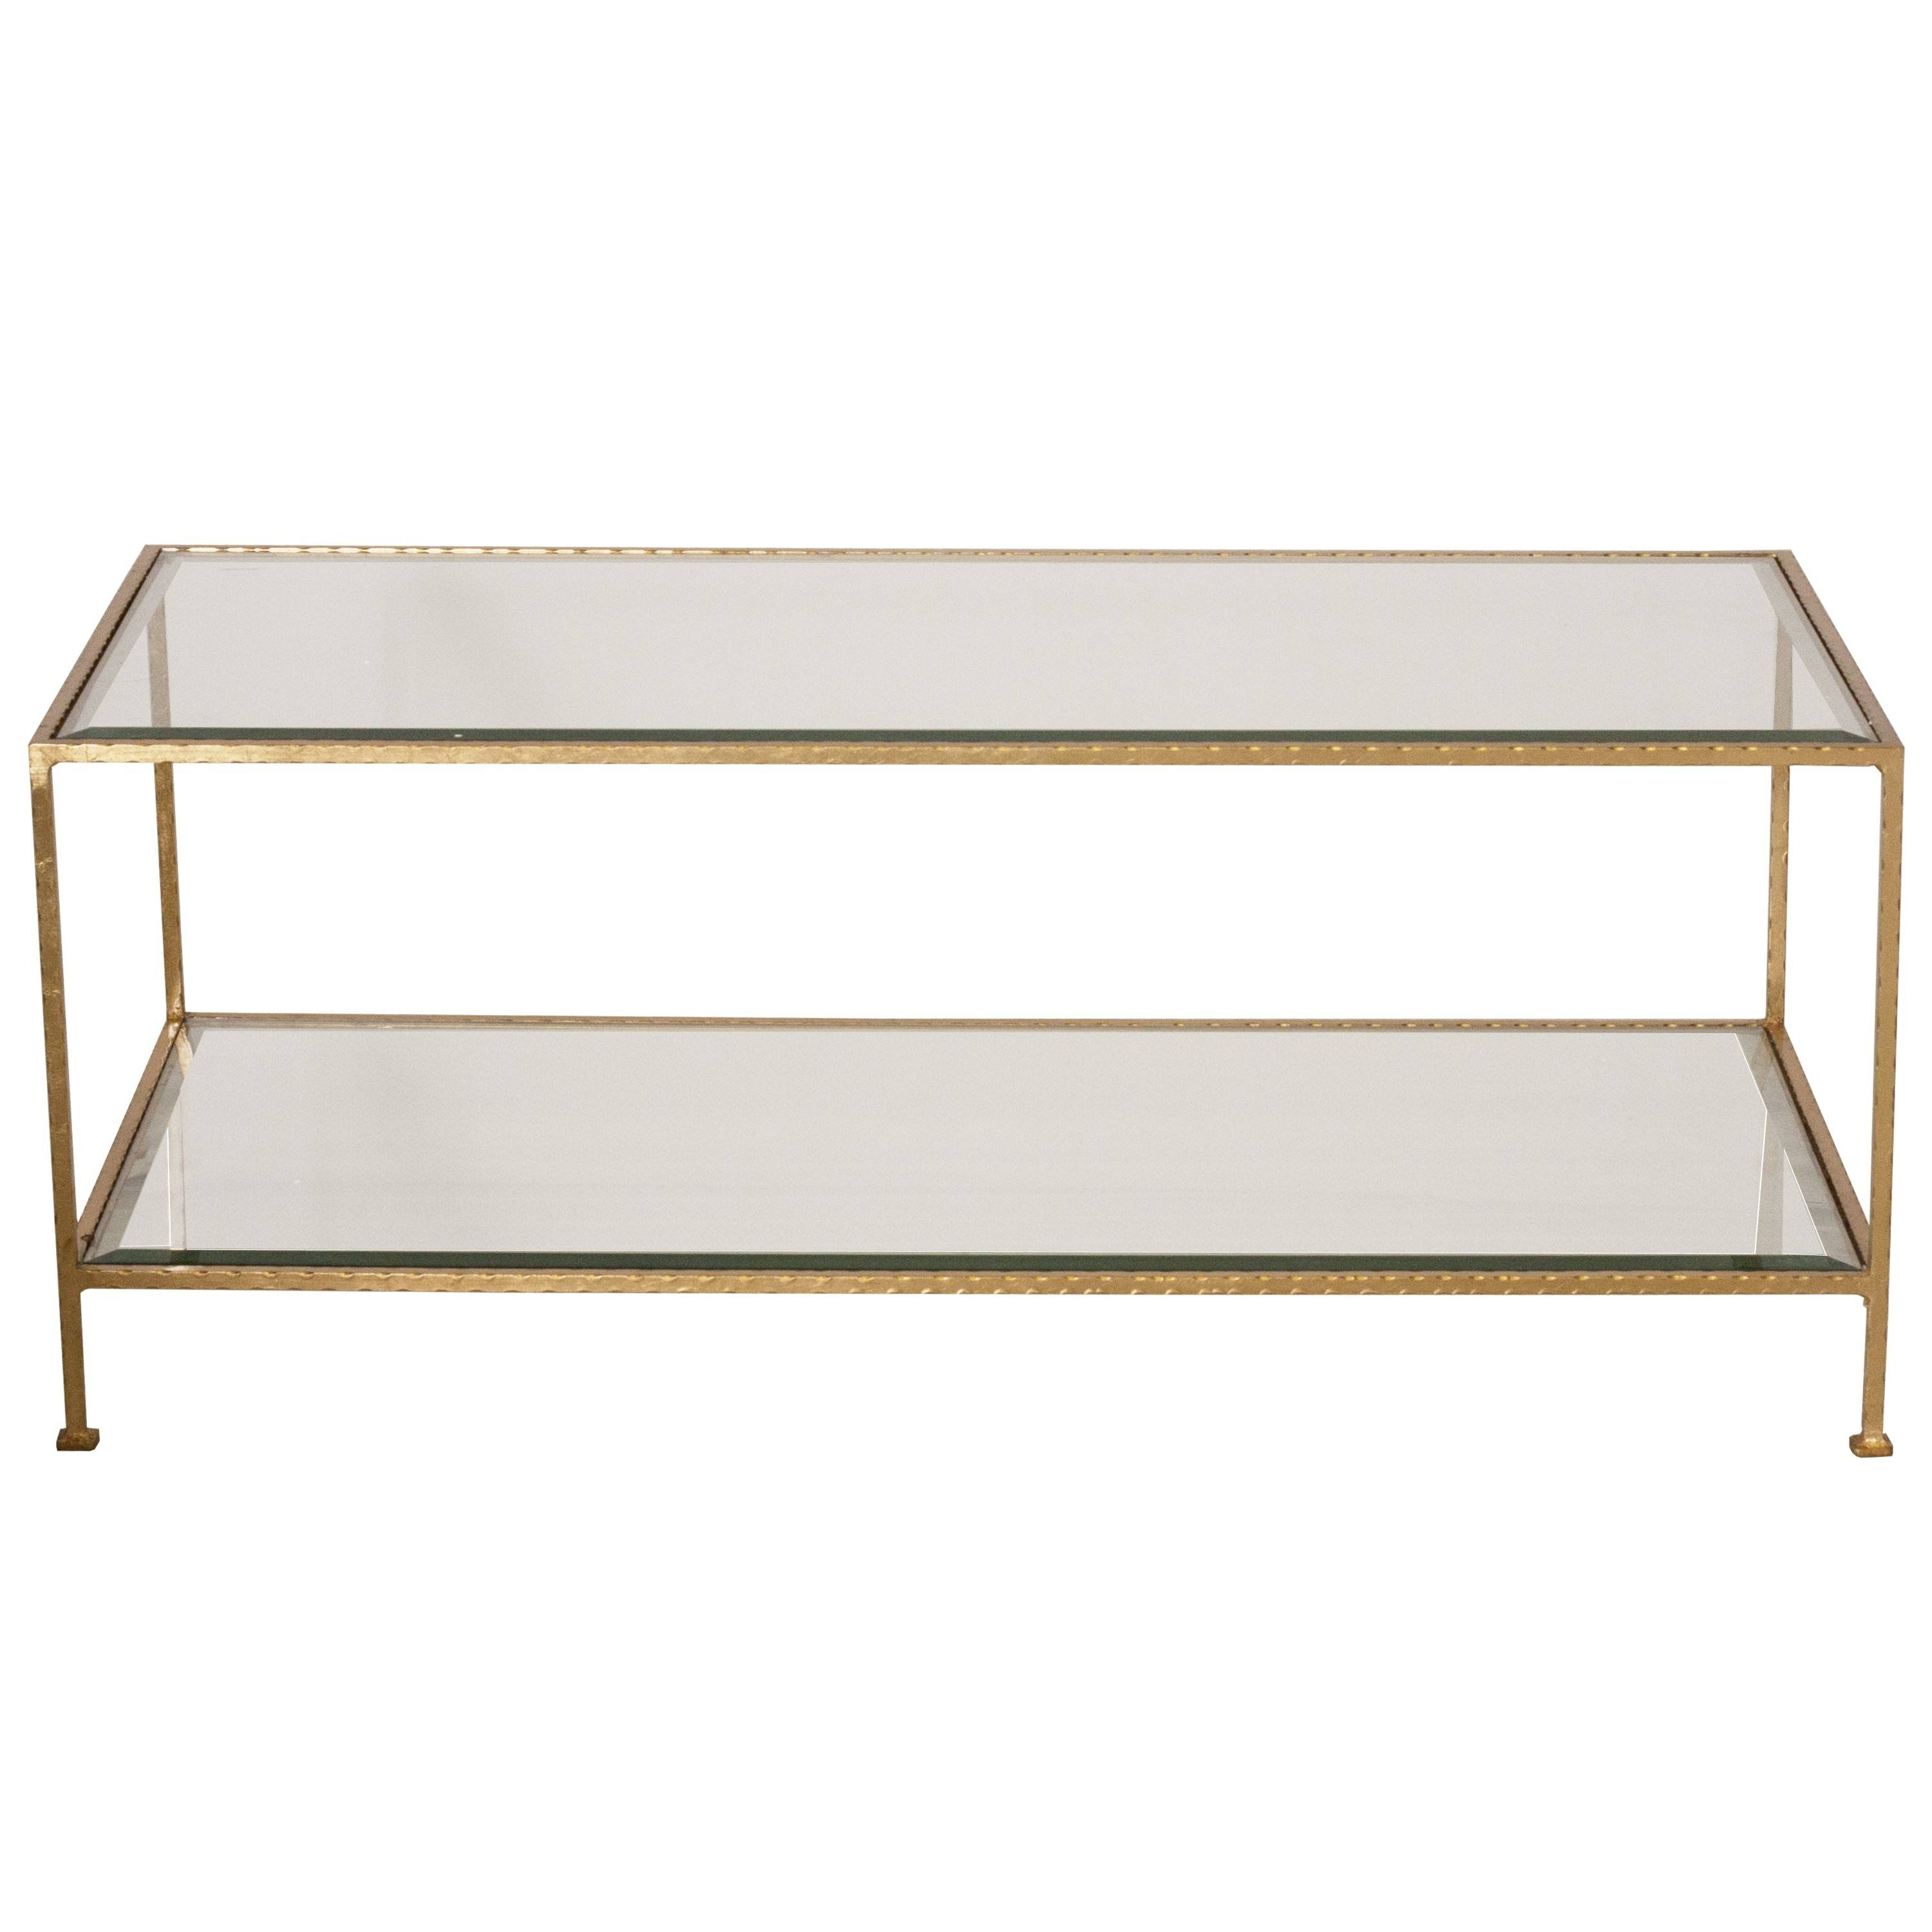 Coffee Table: Breathtaking Glass And Gold Coffee Table Ideas Small with regard to Rectangle Glass Coffee Table (Image 6 of 15)